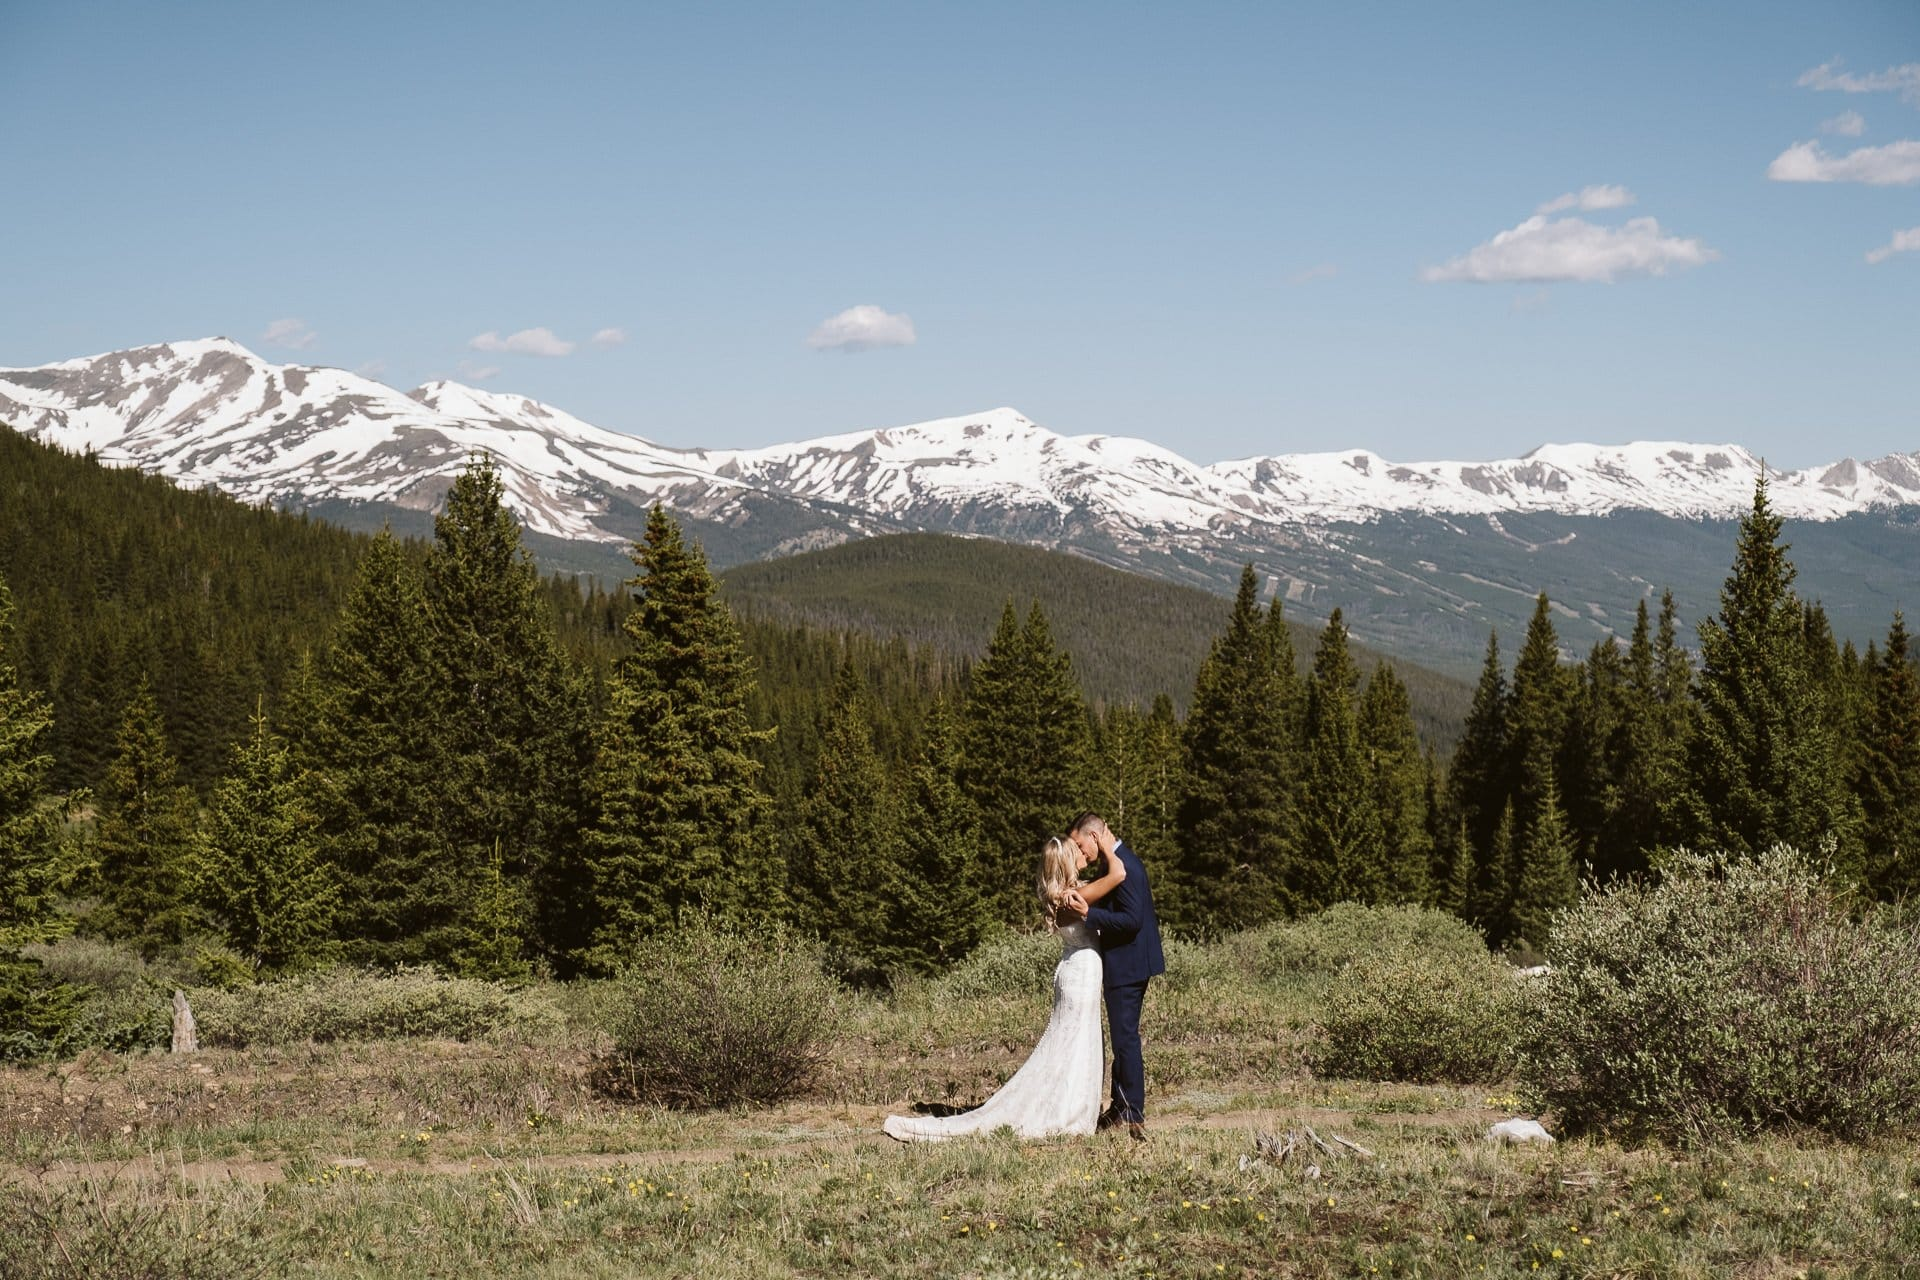 Bride and groom kissing in the mountains of Breckenridge.